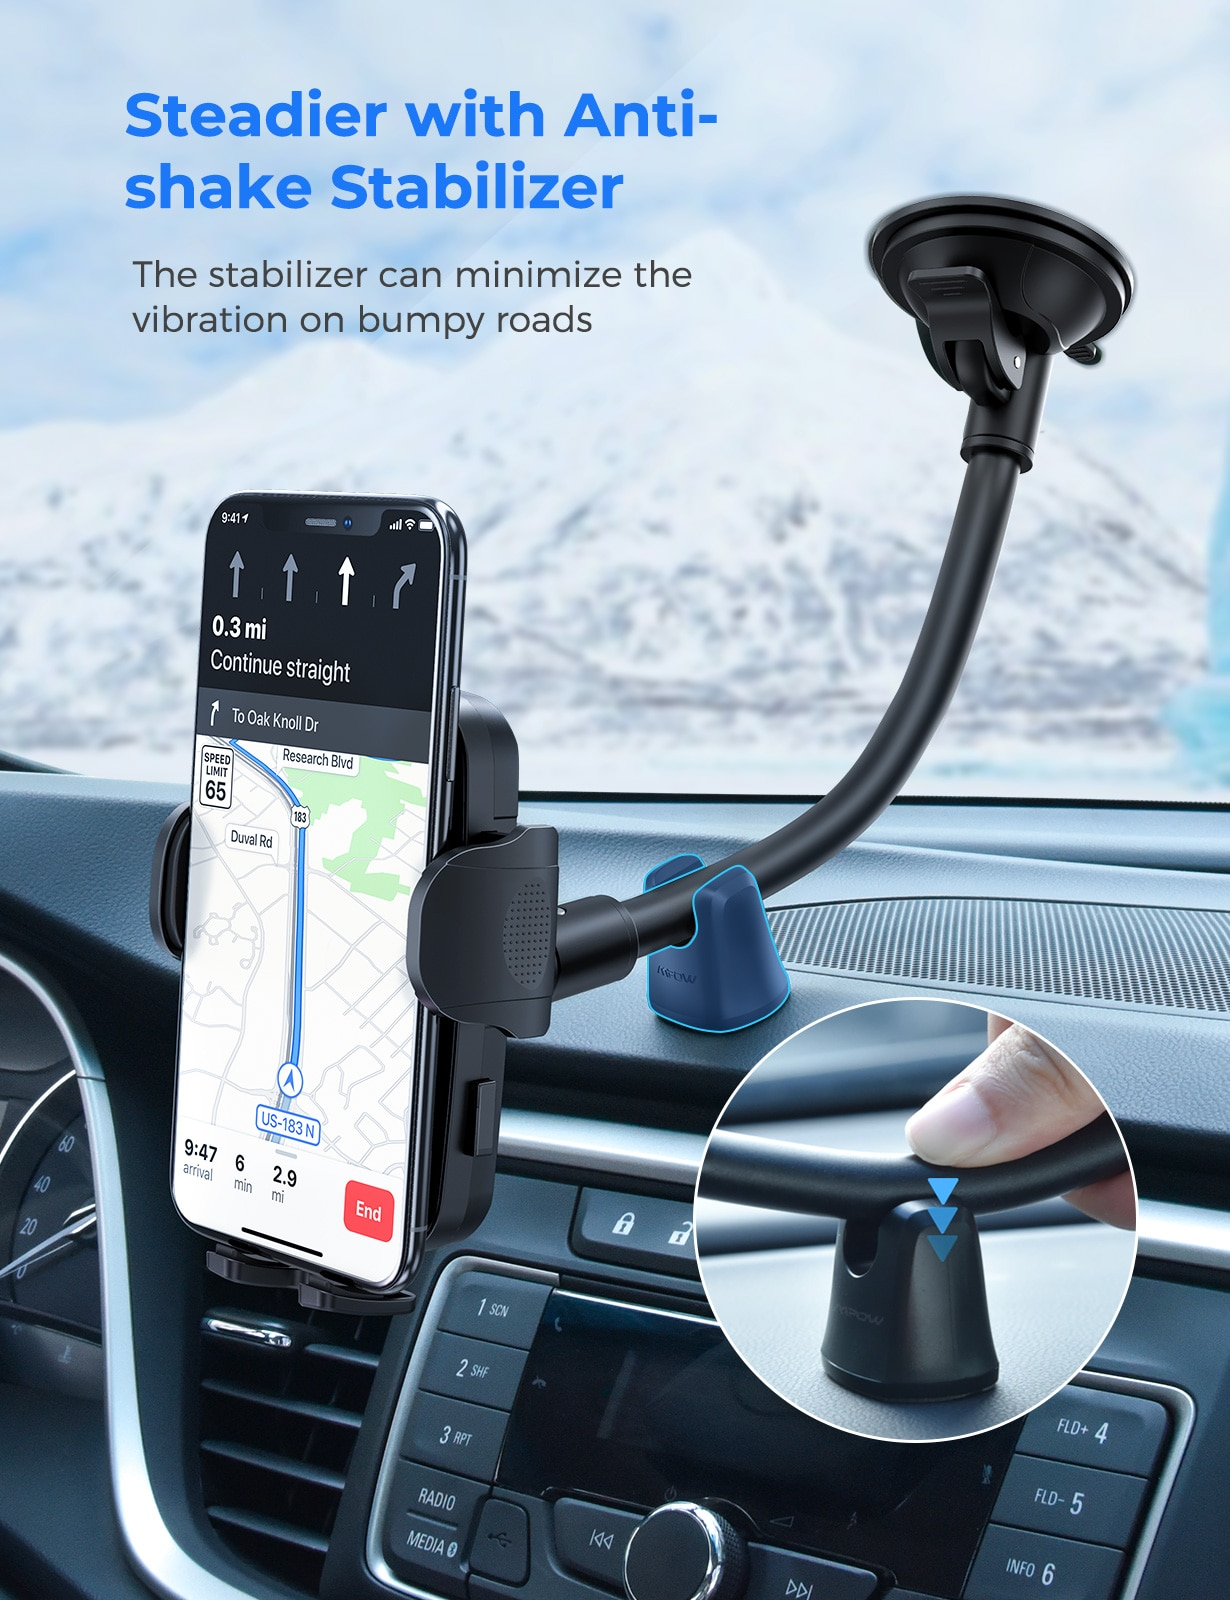 H5e4bff3e8ad049ba93f61c115a770ffdX - MPOW CA159 Upgraded Long Gooseneck Phone Holder for Car Windshield Car Phone Mount for iPhone SE 11 Pro Galaxy Note and More